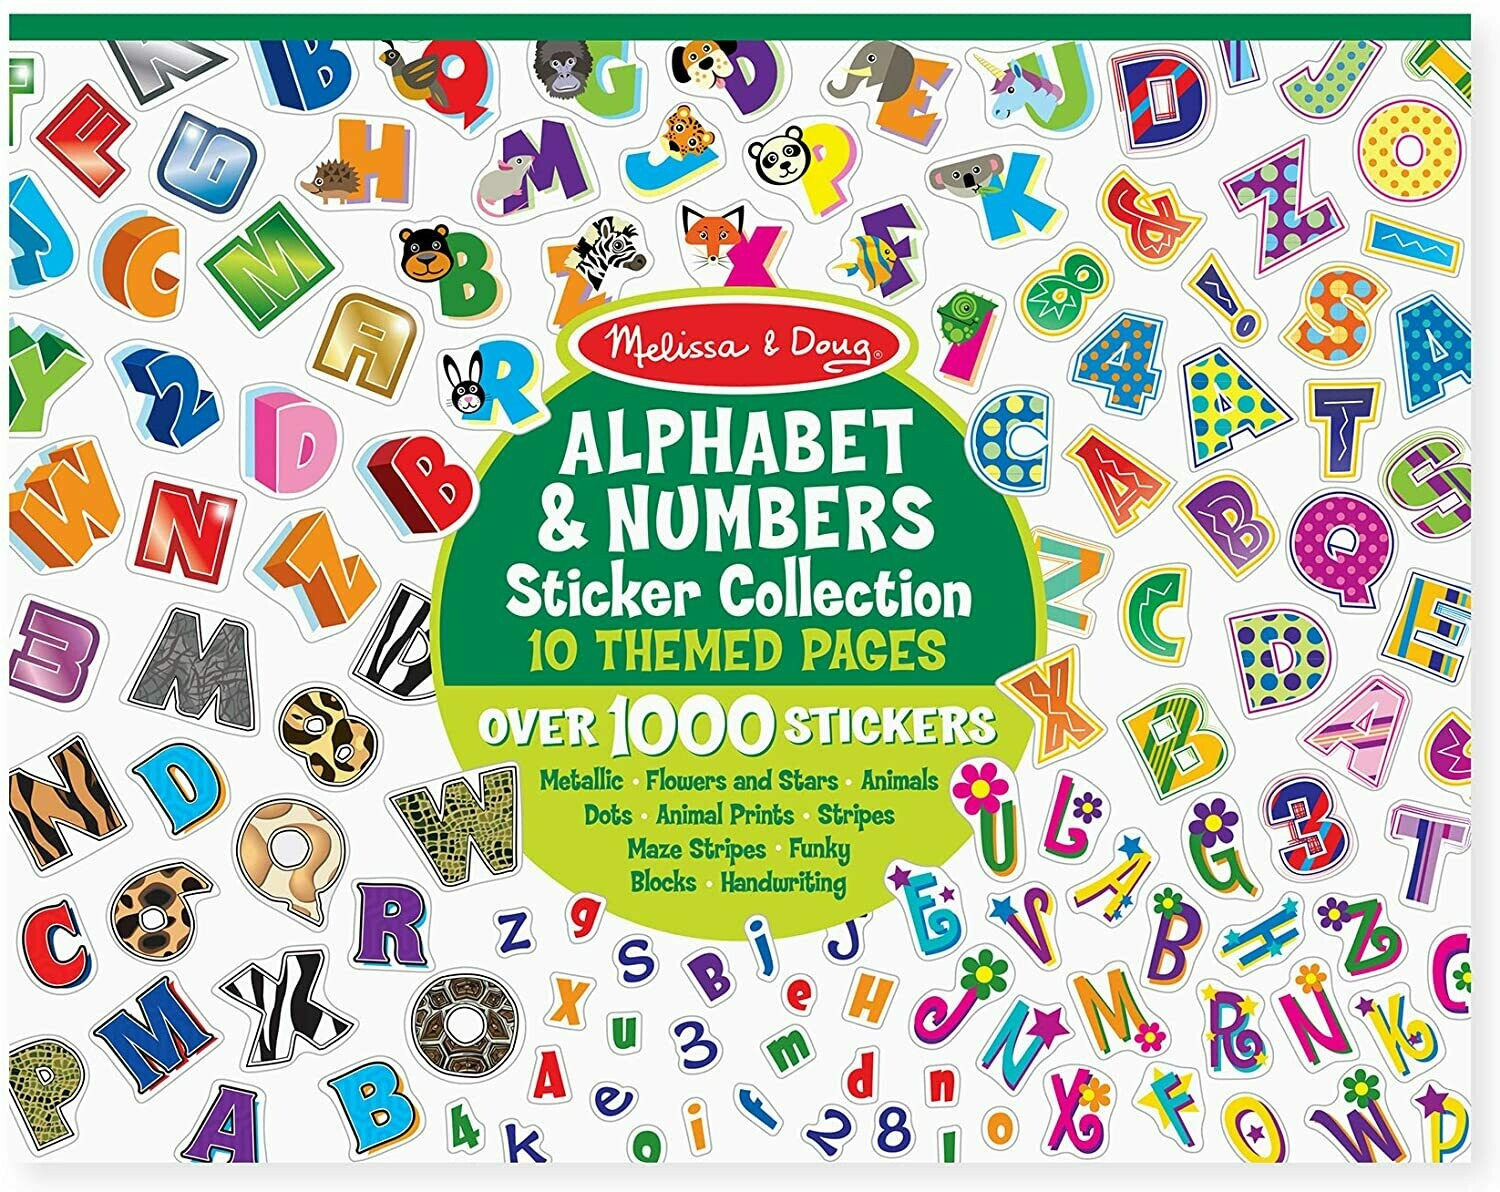 Melissa &Doug Sticker Collection - Alphabet & Numbers